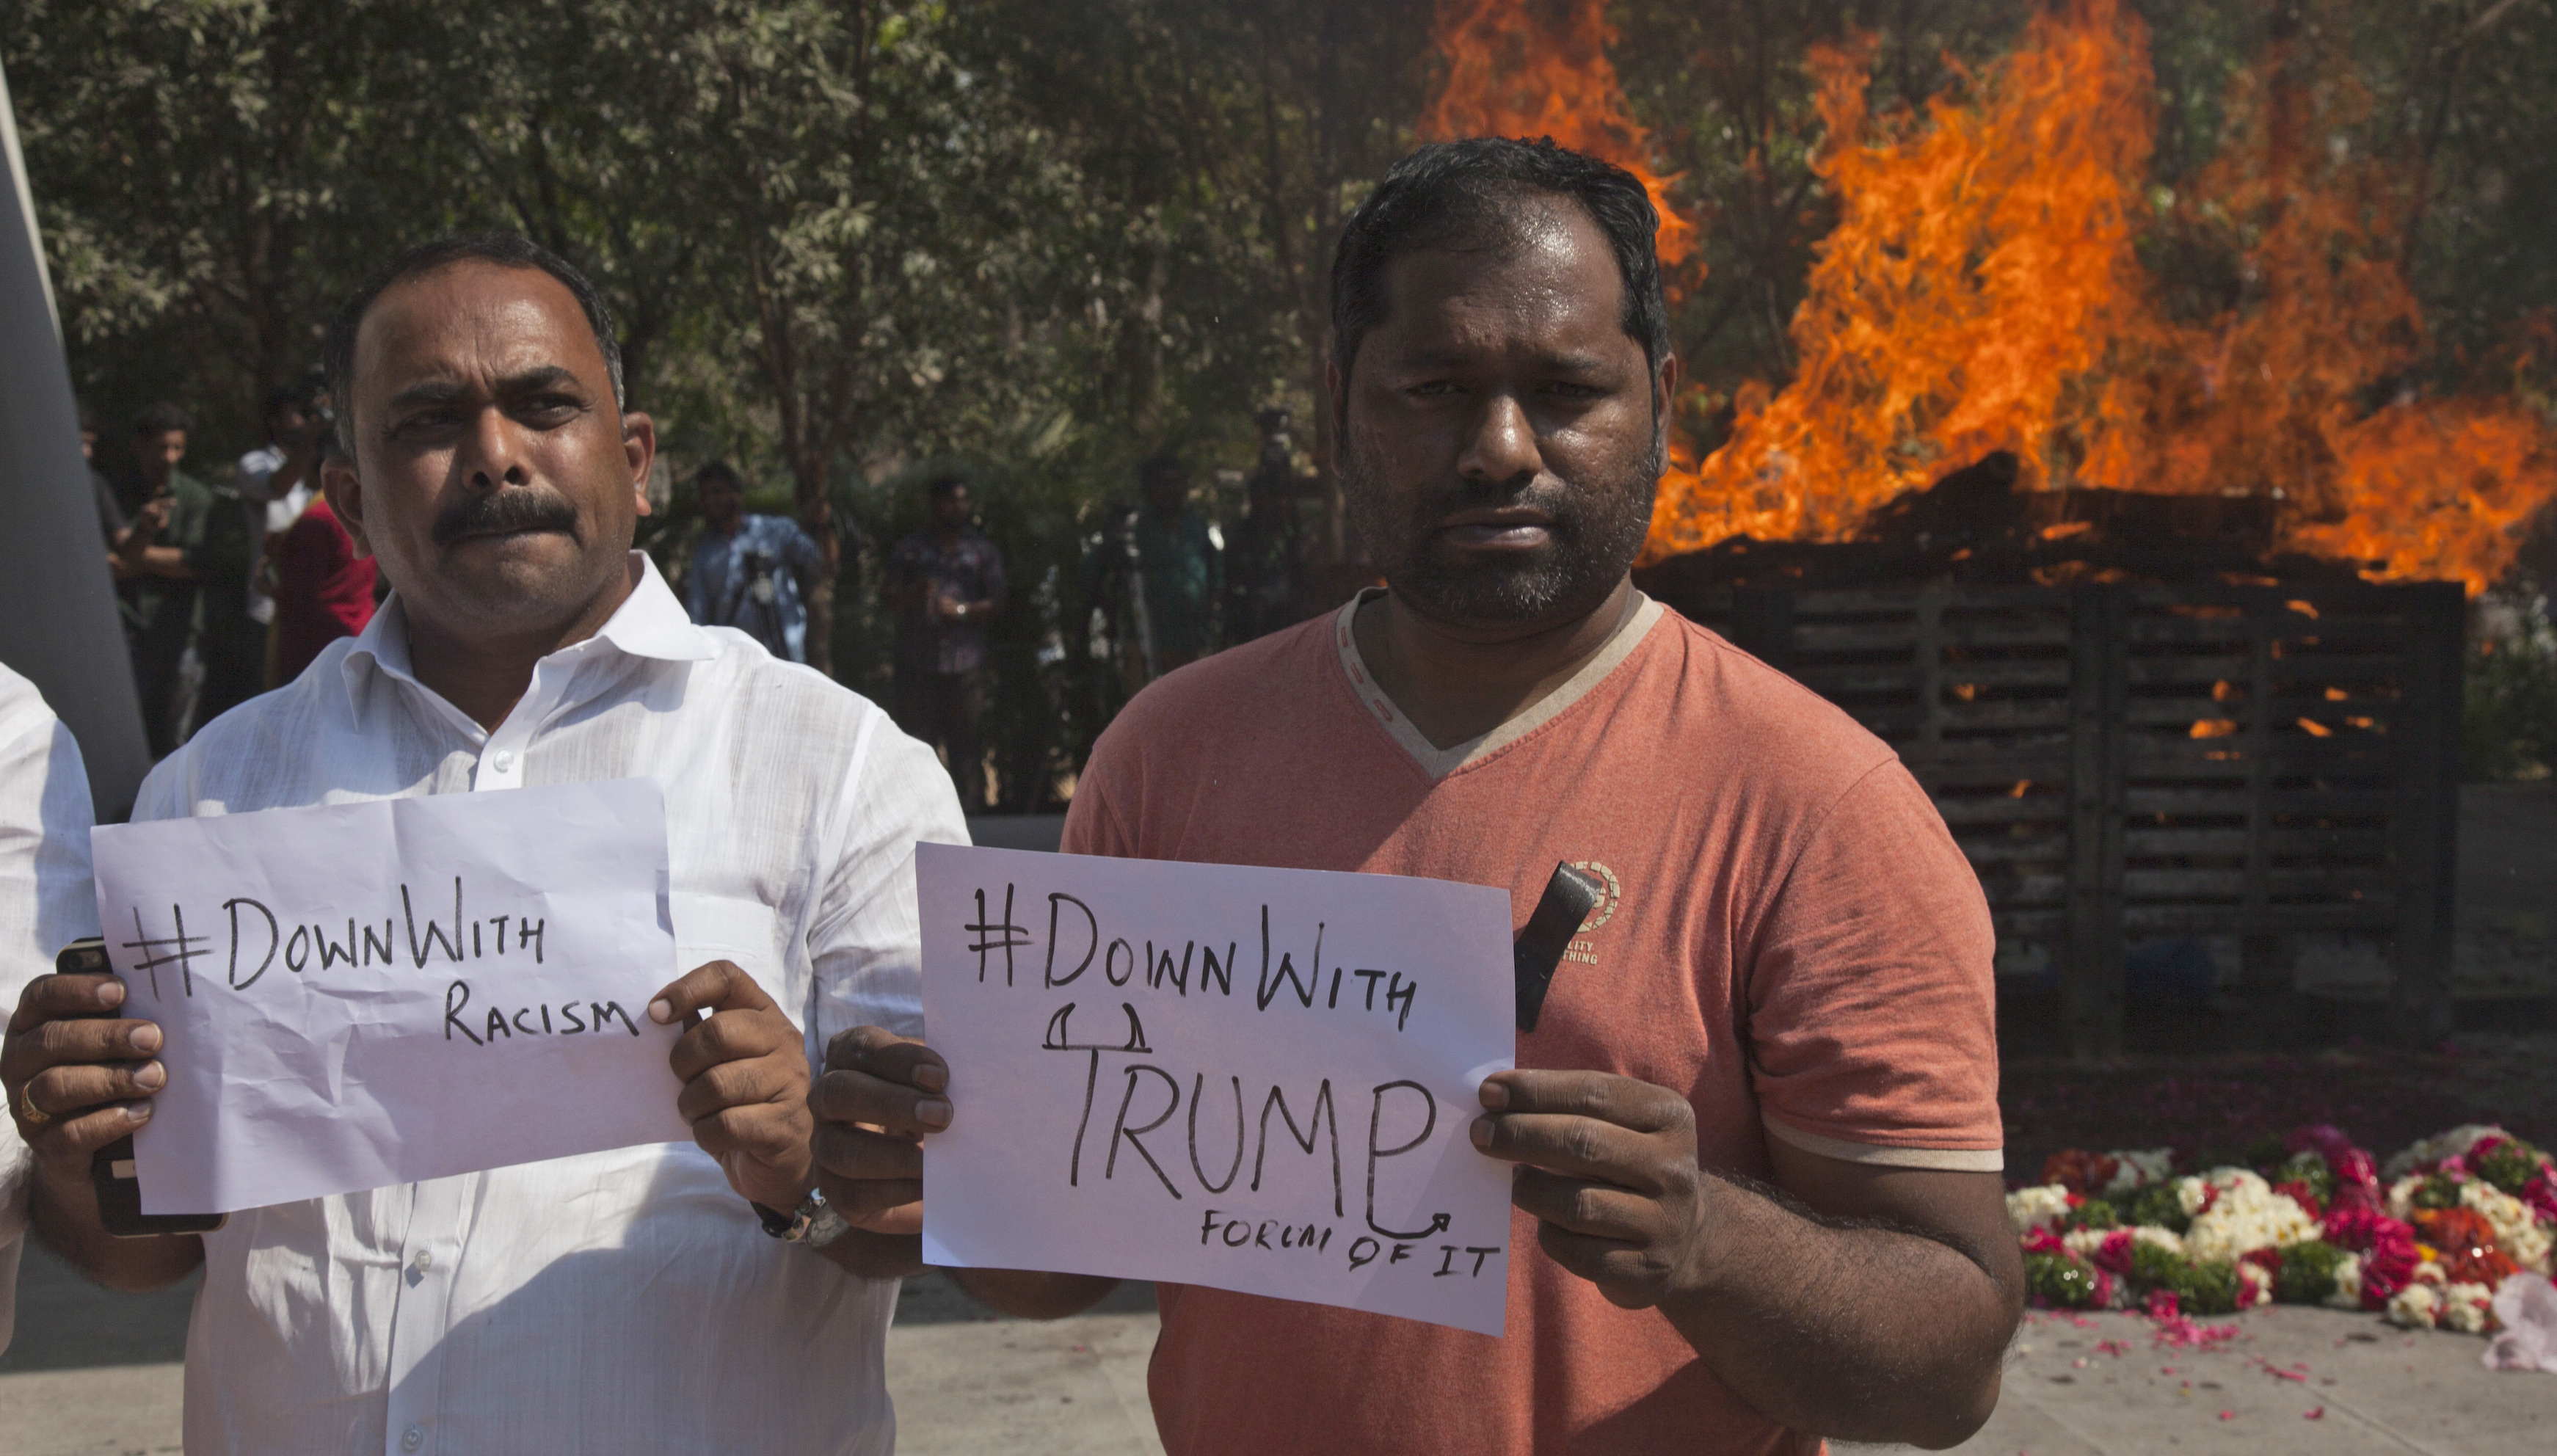 Supporters of Srinivas Kuchibhotla hold placards in a protest against racism